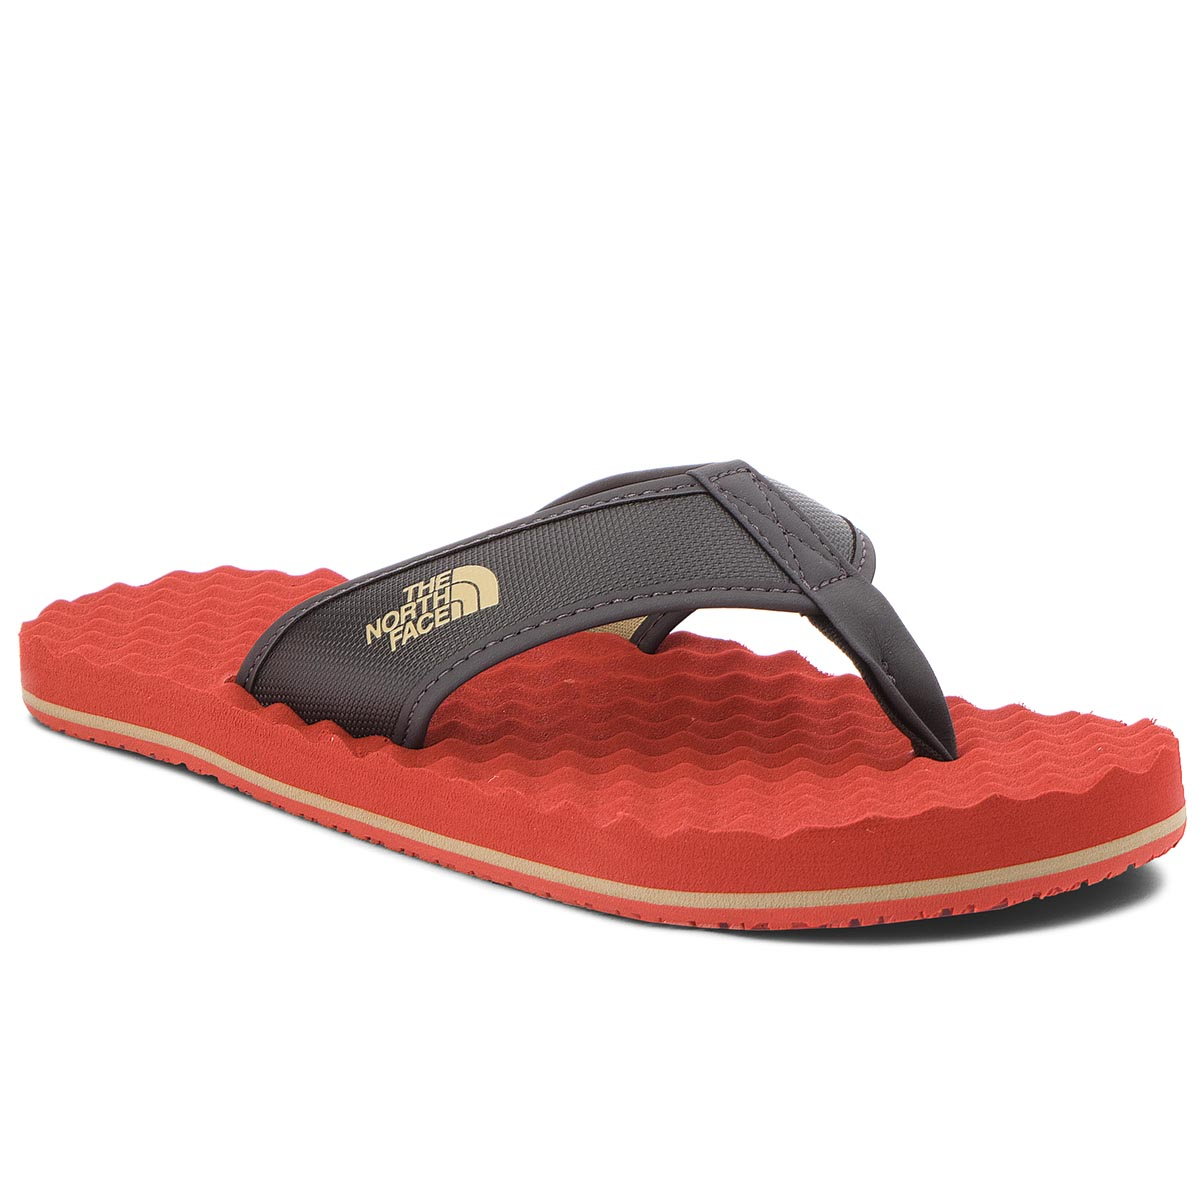 Flip flop THE NORTH FACE - Basecamp Flip Flop T0ABPE1WP Bossnovrd/Klptn